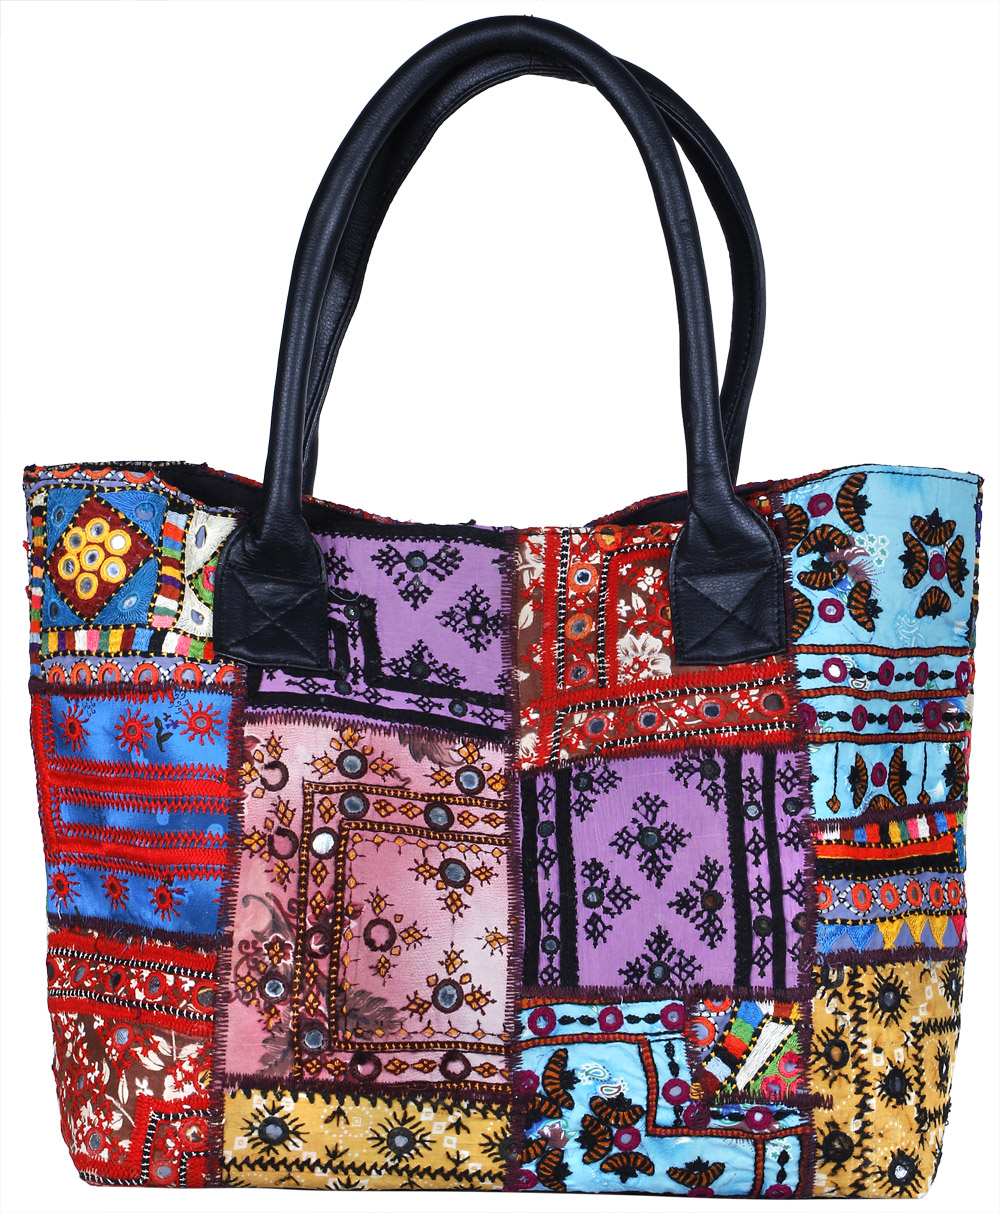 Multicolor shopper bag from kutch with embroidered patches